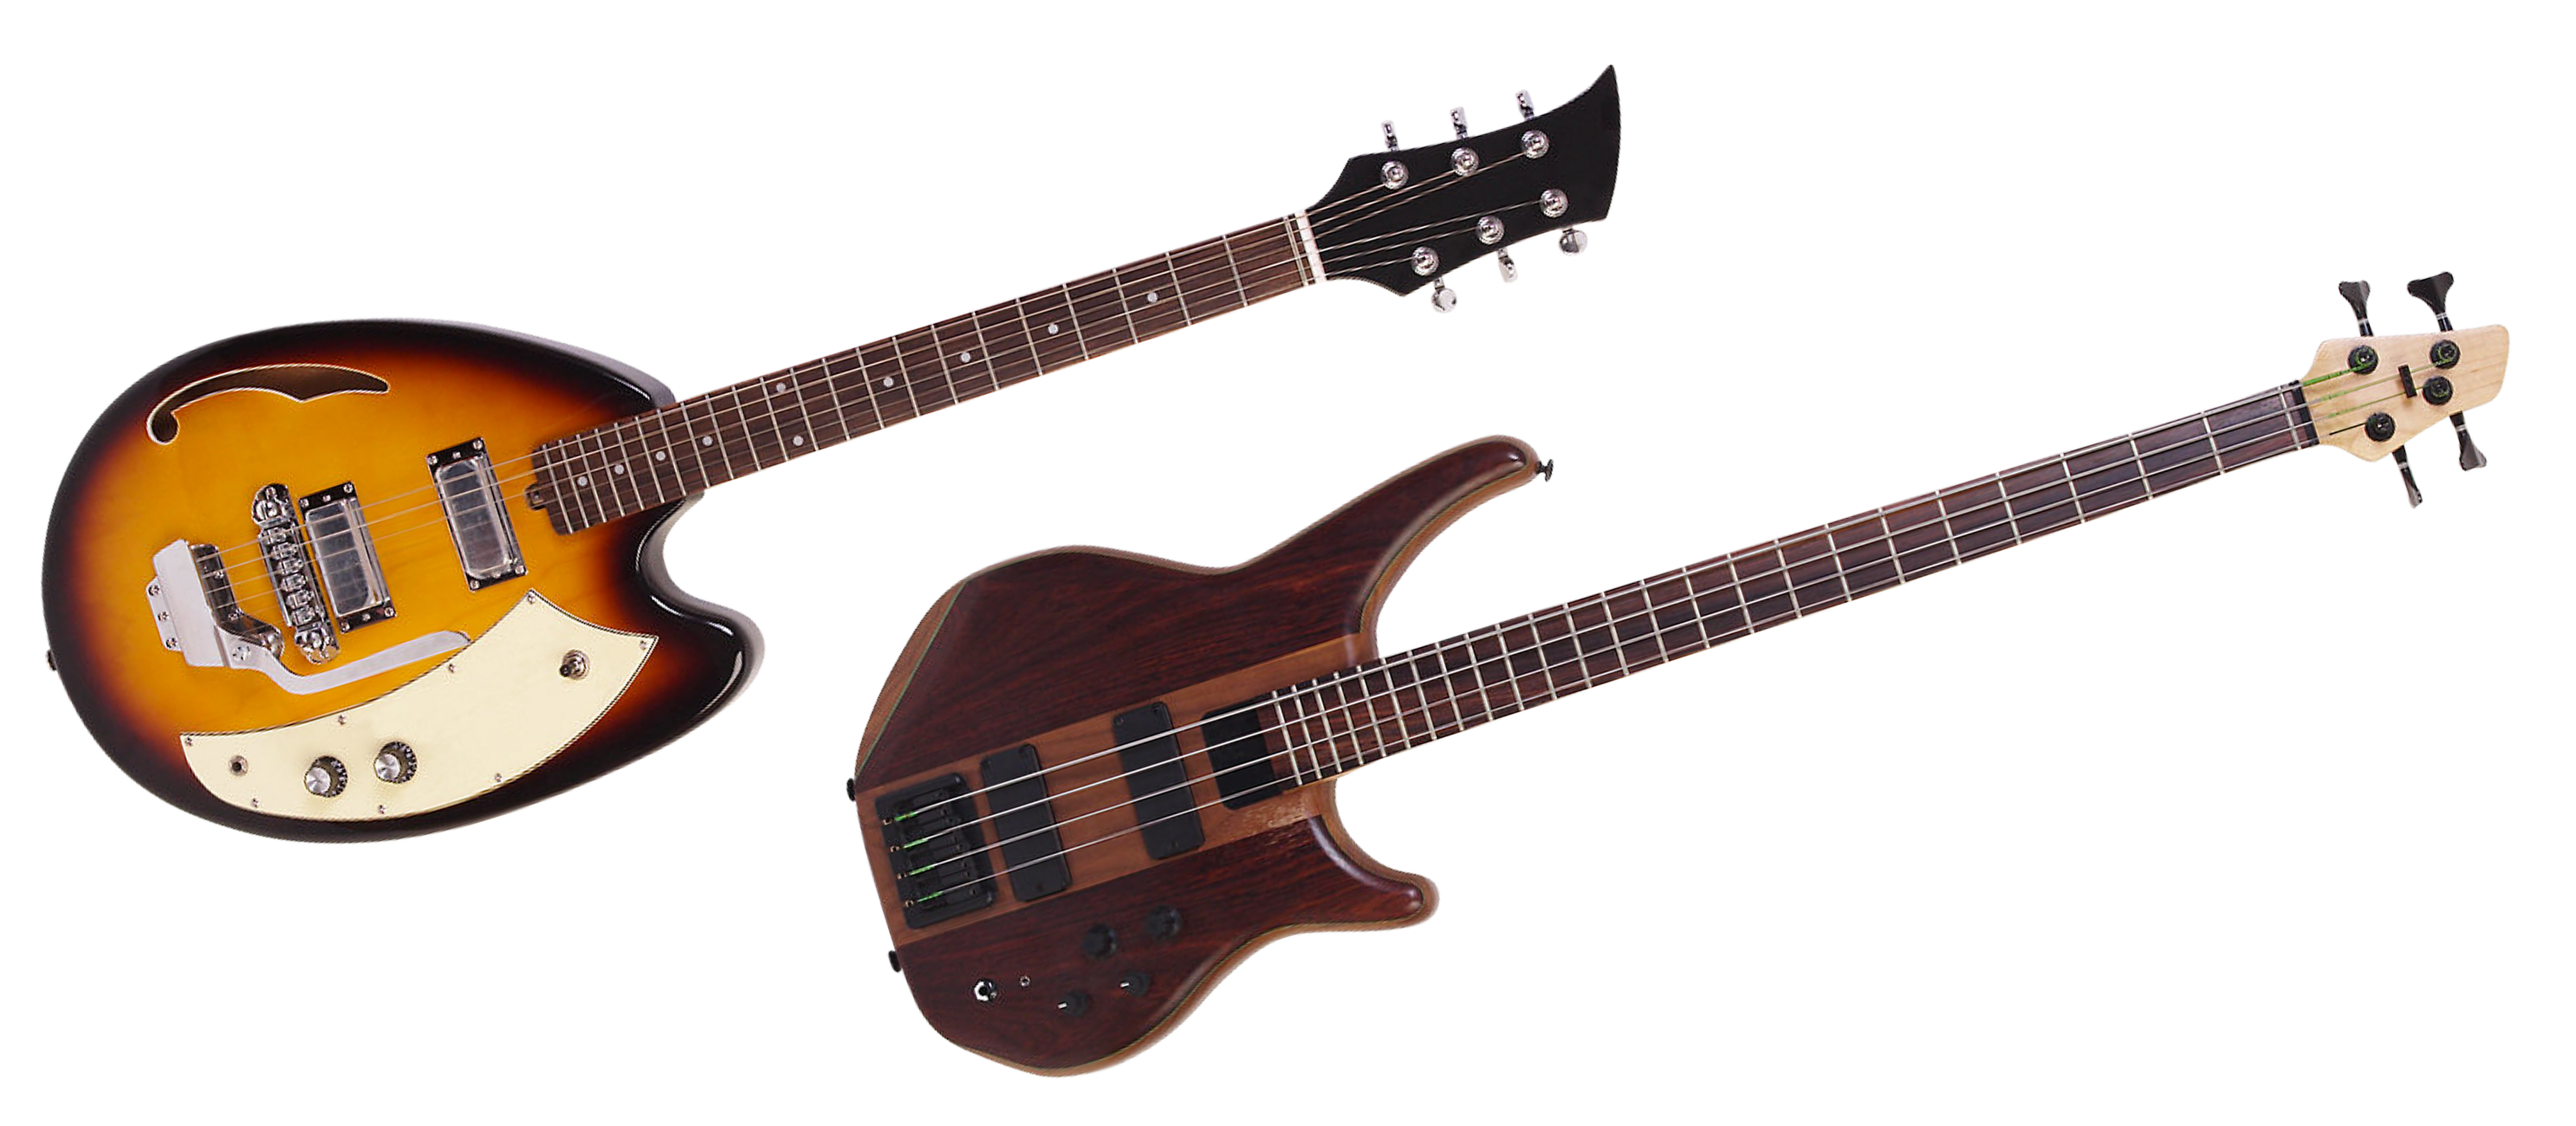 FileTeisco May Queen C1968 Ibanez Unidentified Bass 2017